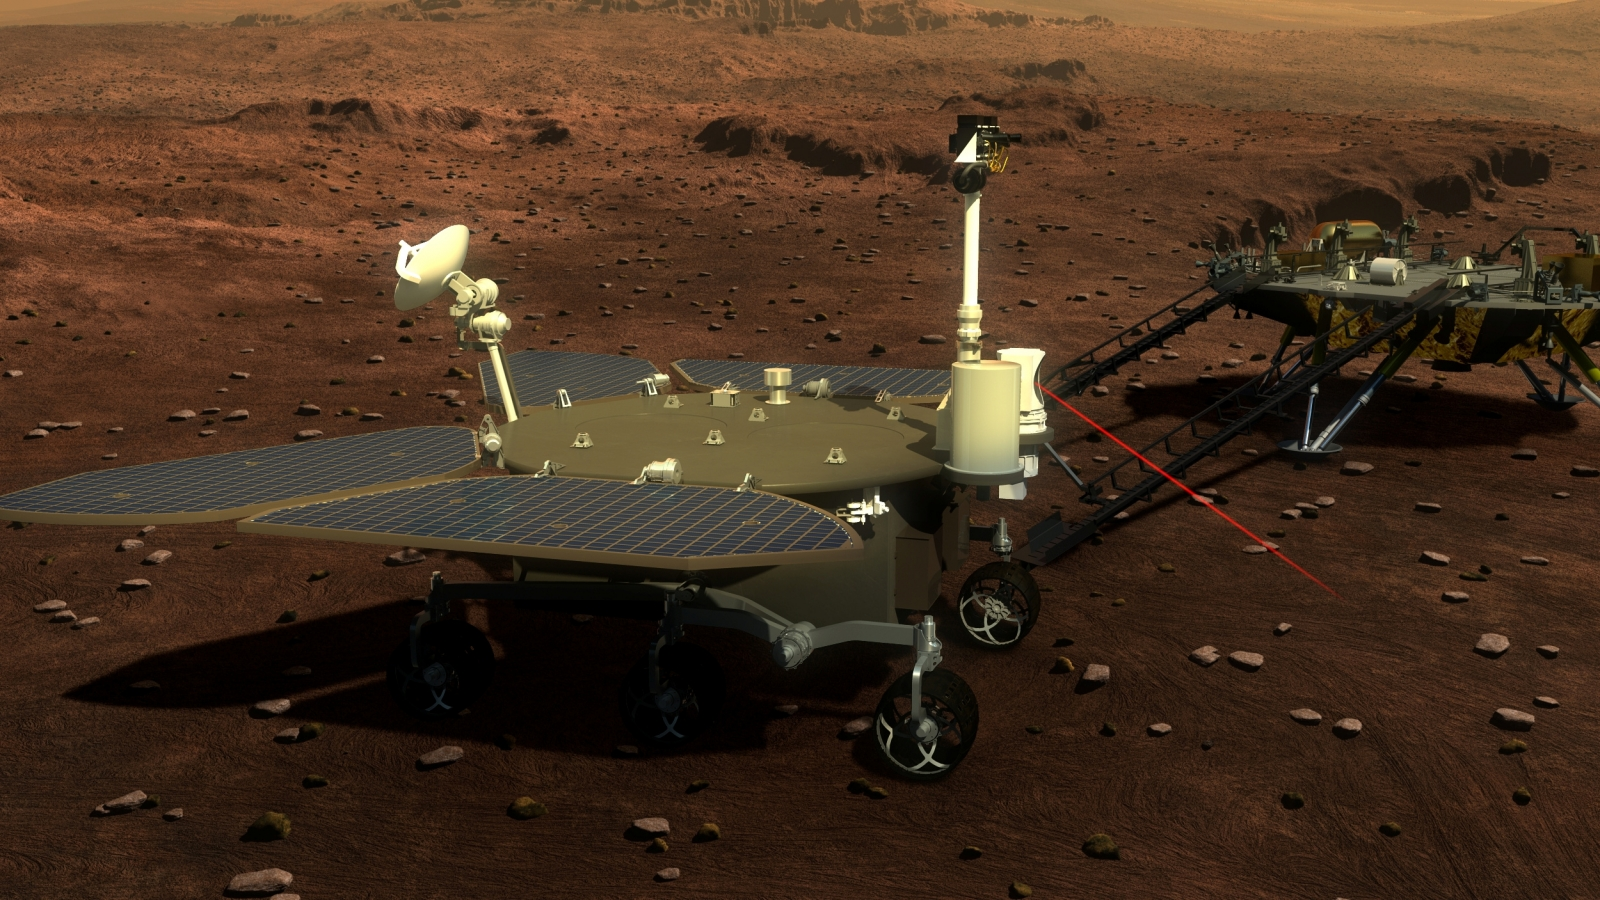 solar power mission to mars - photo #2